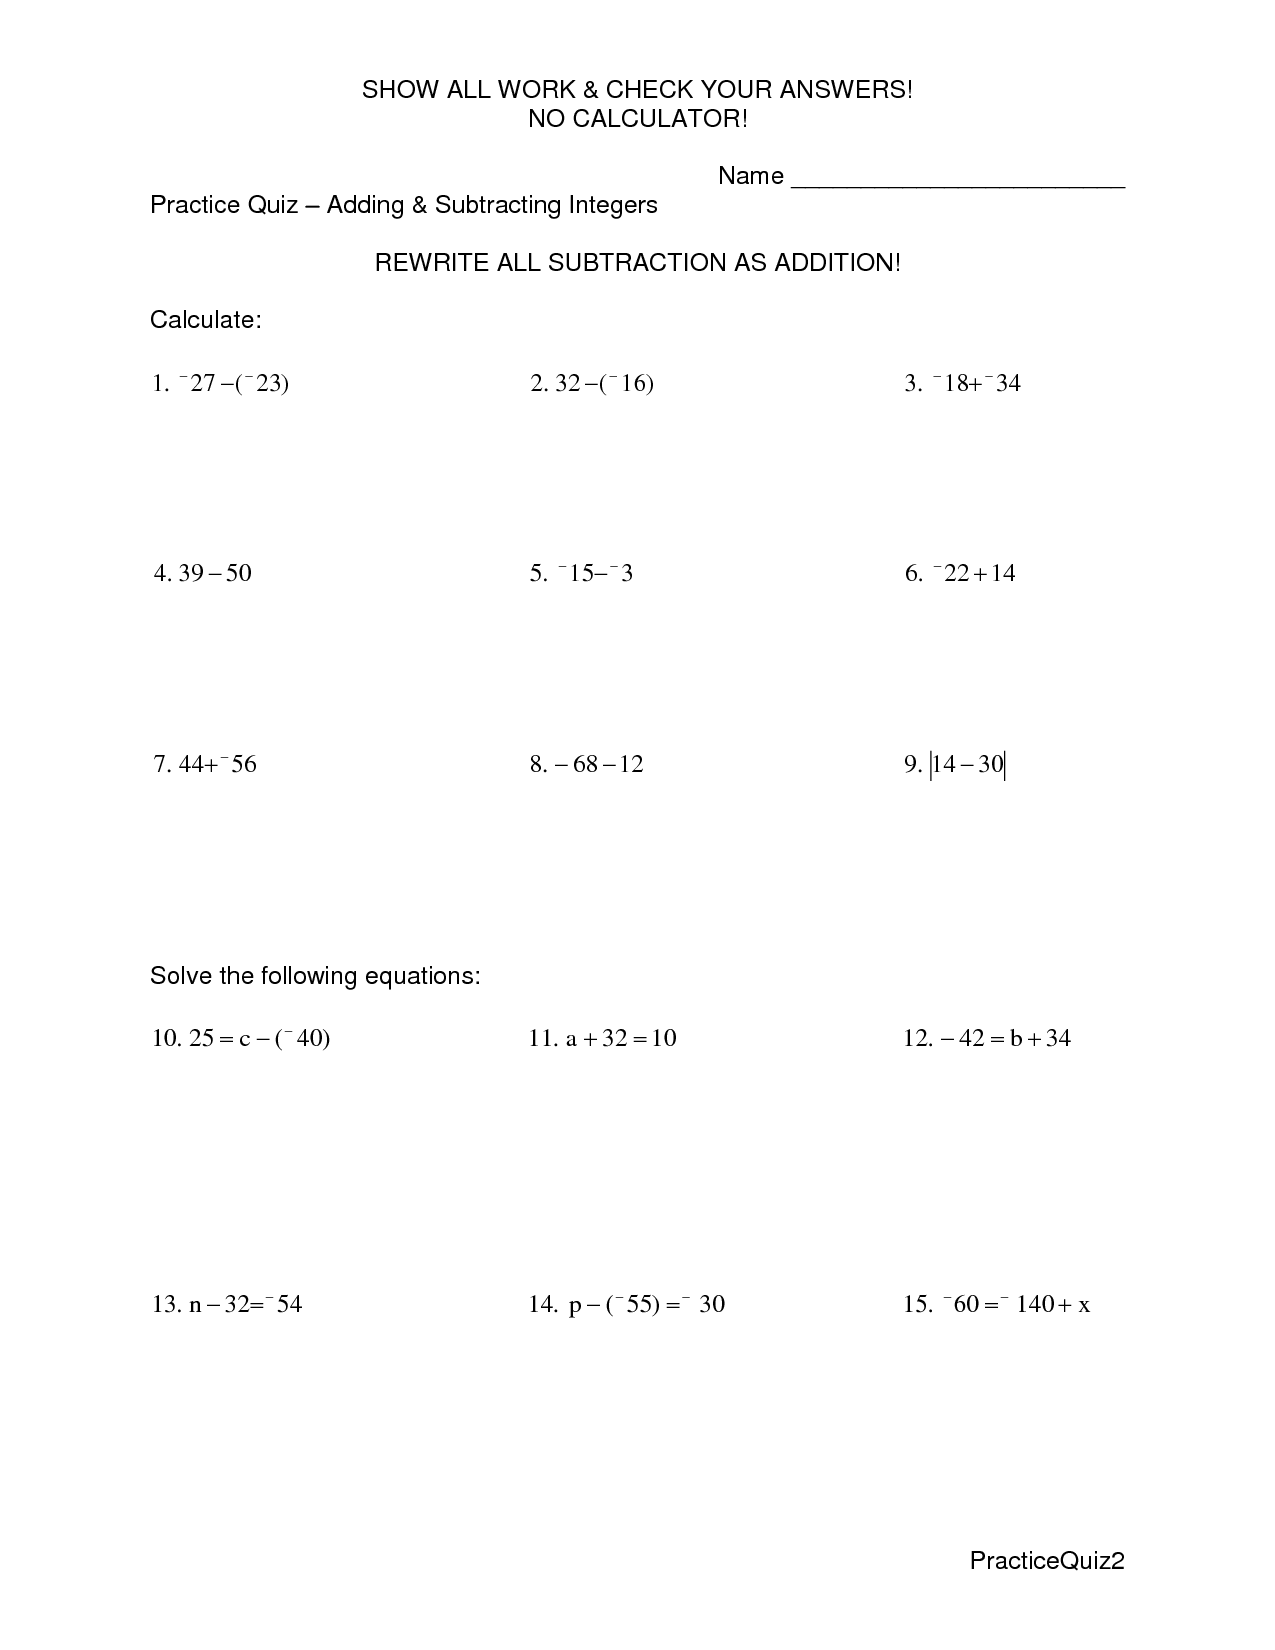 Adding And Subtracting Integers Worksheet With Answers